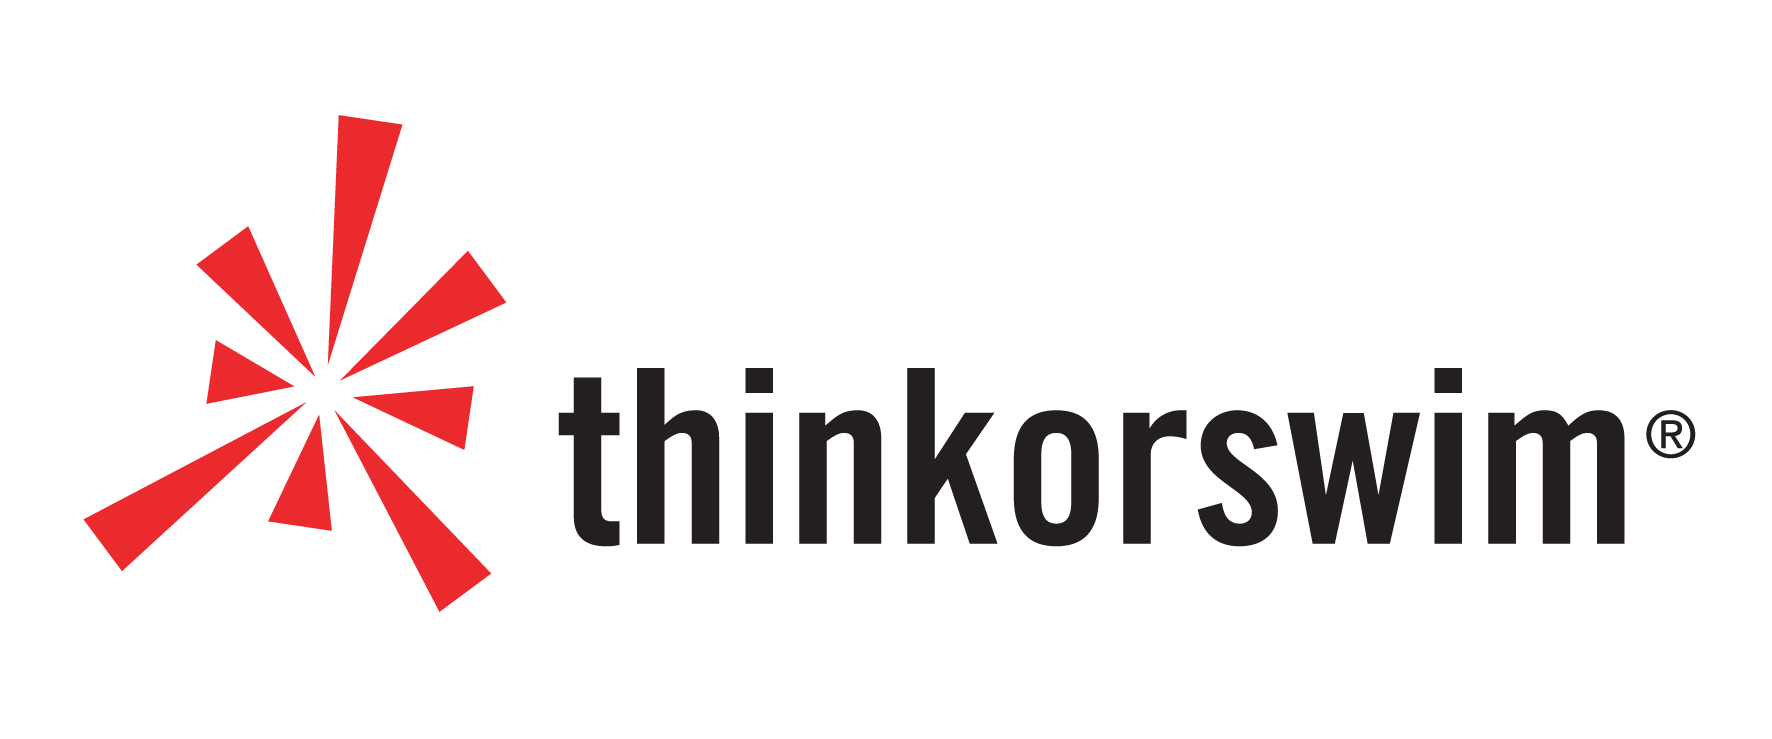 thinkorswim Group Inc. Logo